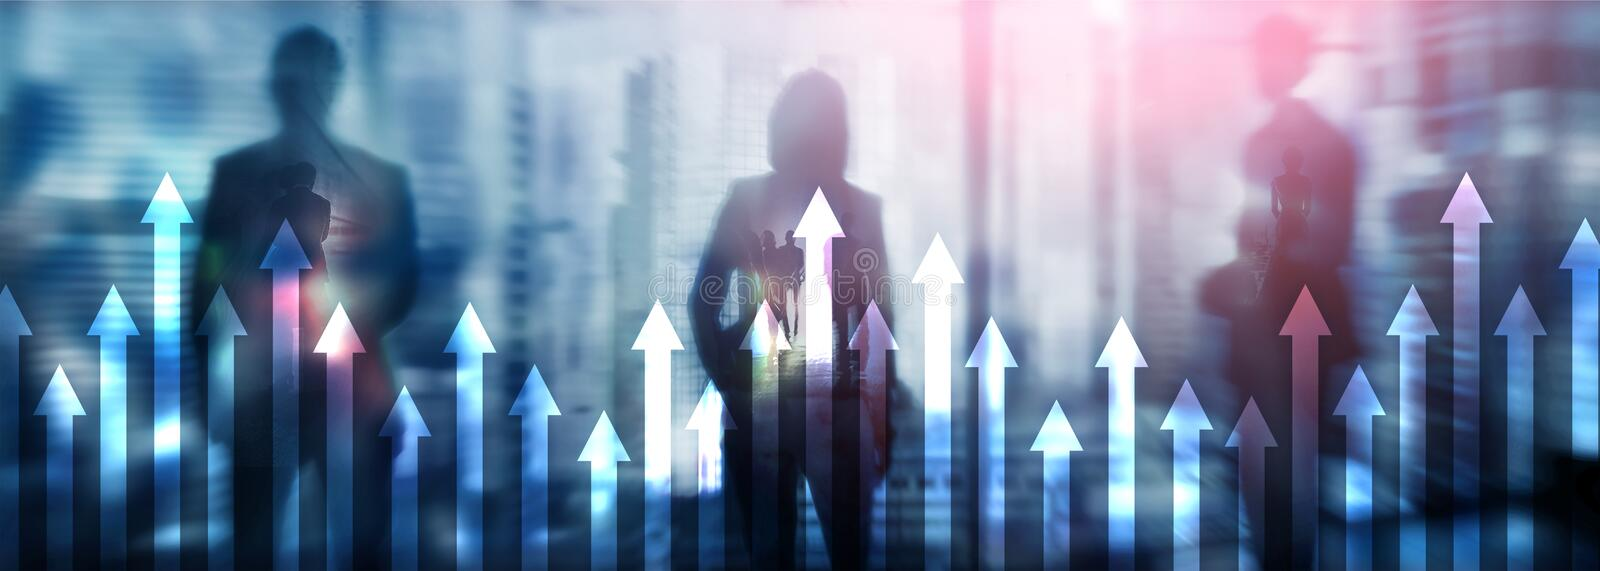 Up arrow graph on skyscraper background. Invesment and financial growth concept.  stock images